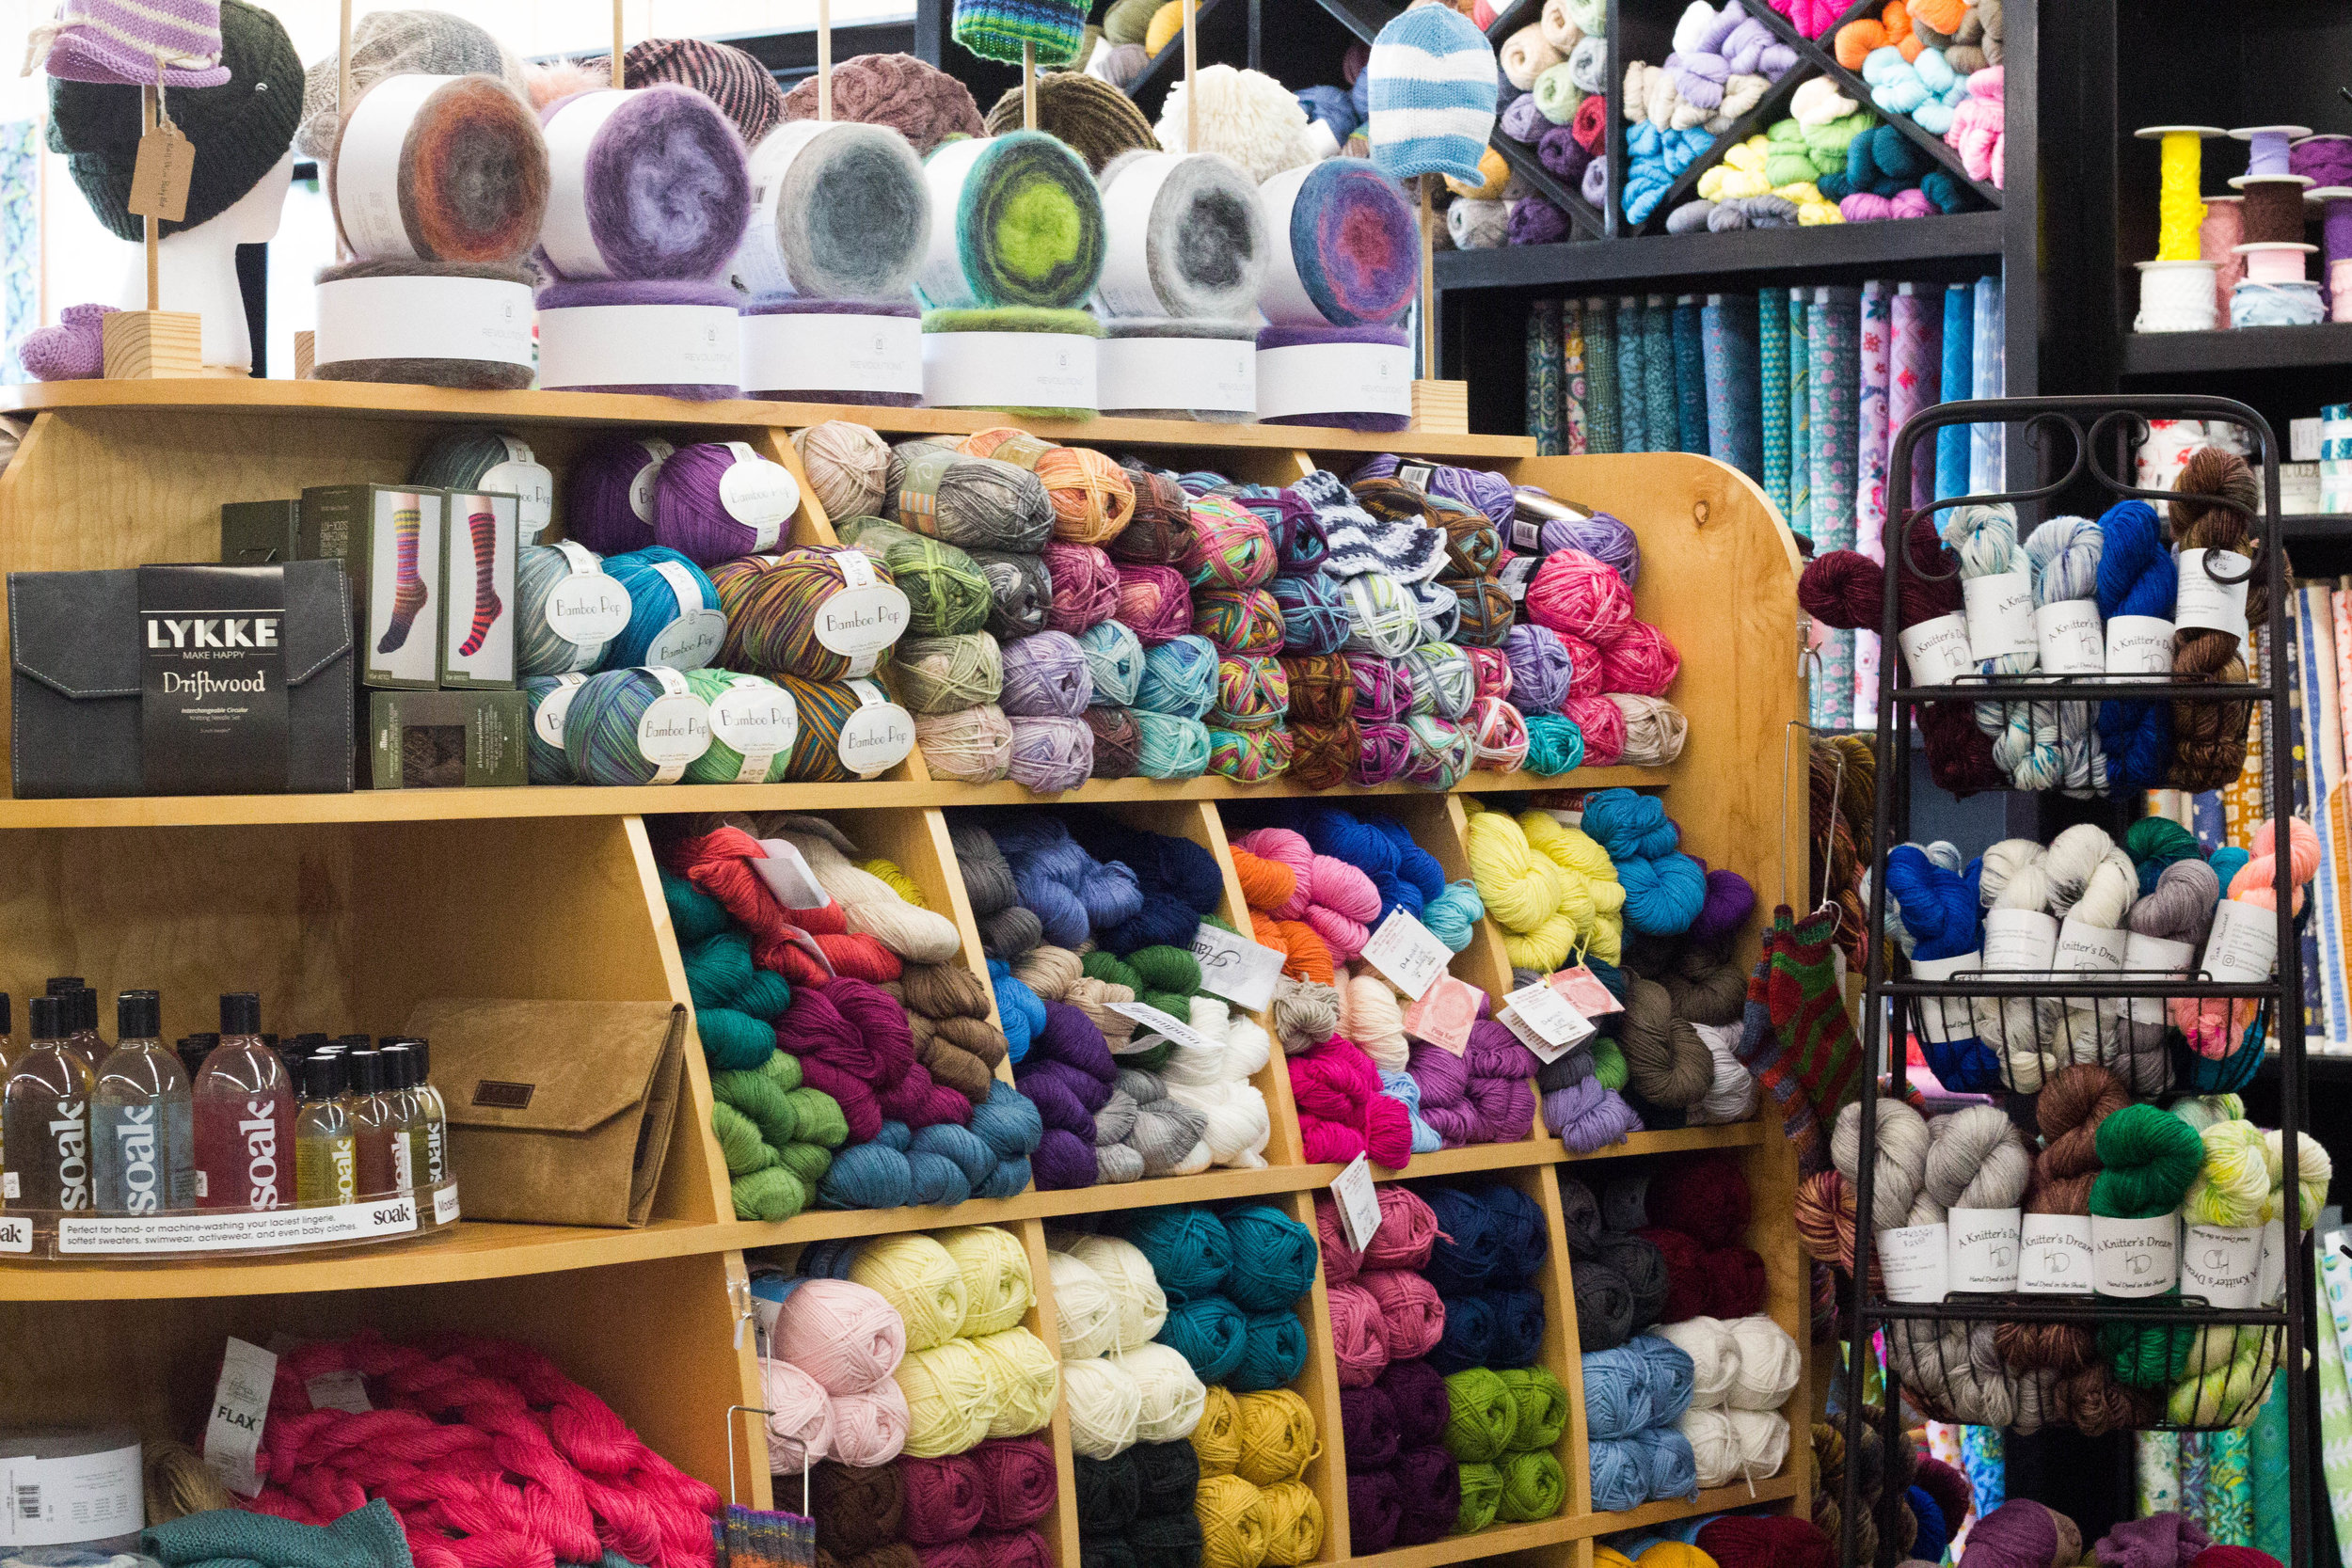 Yarn - We offer a wide selection of yarn from major brands, including Berroco, Cascade, Plymouth, and Universal, as well as indie-dyers such as Big Sky Yarn Co., Hedgehog Fibres, and Urth. We have everything from fingering weight to bulky for whatever your next project may be. We also stock the latest kits for socks, baby gifts, and scarves. Our needles and specialty notions include selections from Lykke, HiyaHiya, and Cocoknits. We are a Ravelry Pro store, which means any Ravelry pattern you purchase at Thread supports both the designer and your local knit shop. Join us the 2nd and 4th Tuesday of each month from 5 to 7pm for Knit Night, and check our calendar for knitting and crochet classes for crafters of all levels.